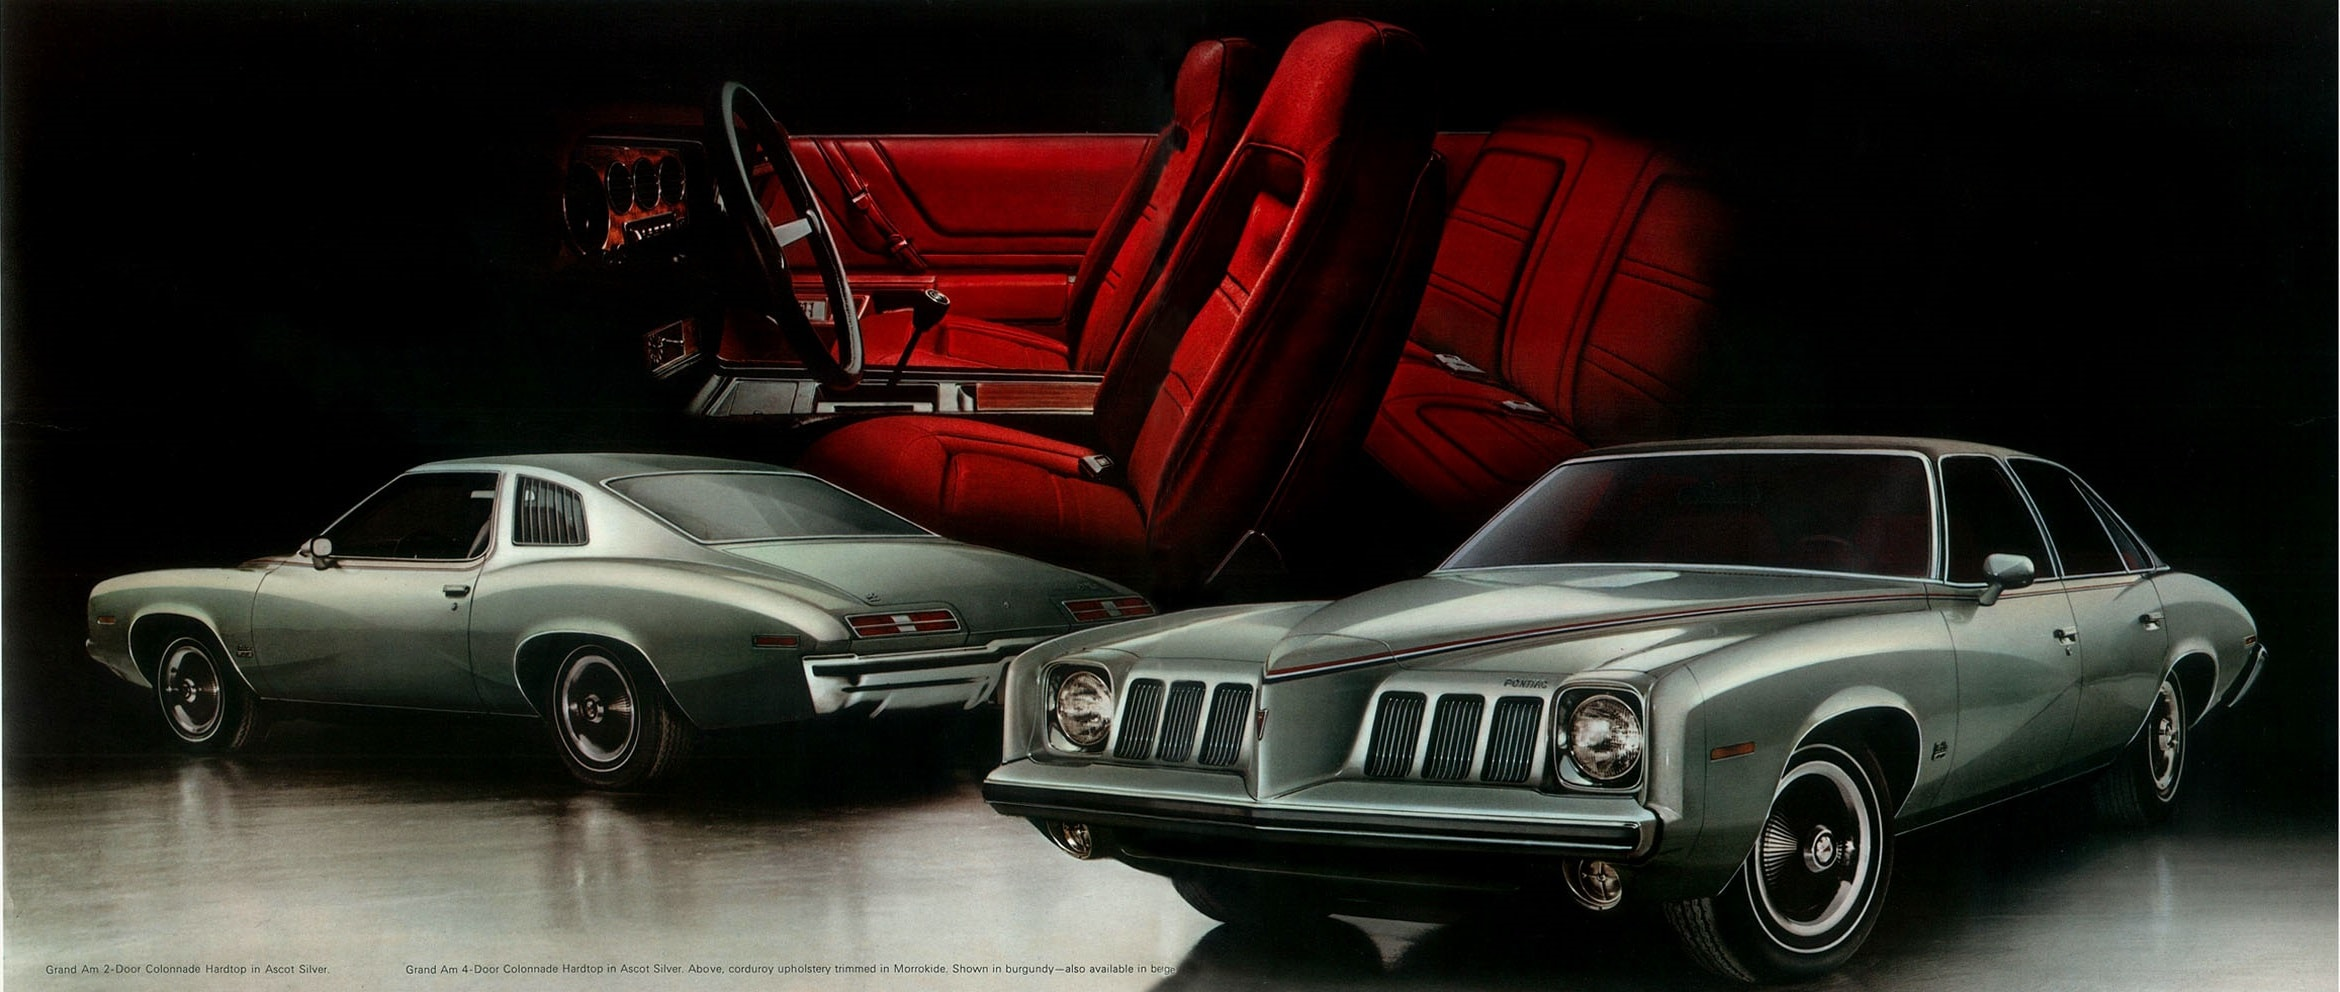 Pontiac Grand Am 1973 HD pics